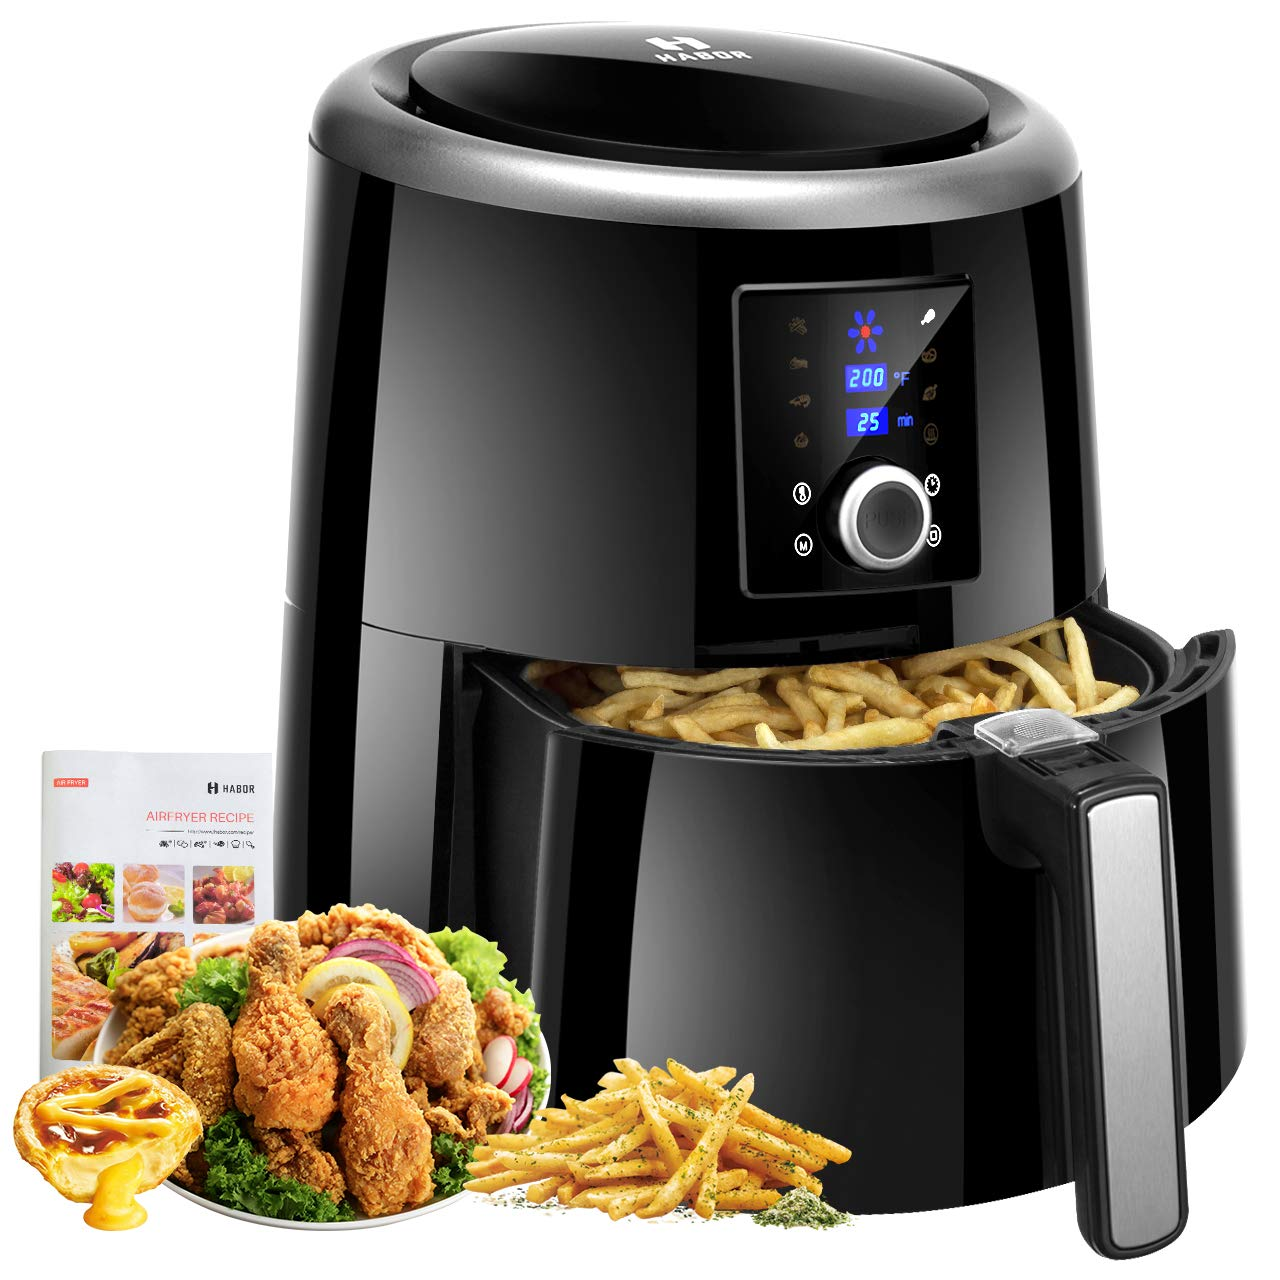 Habor Air Fryer XL, 5.8QT Oilless Air Fryer Oven, 7 Cooking Presets Electric Hot Air Cooker with Heat Preservation Function